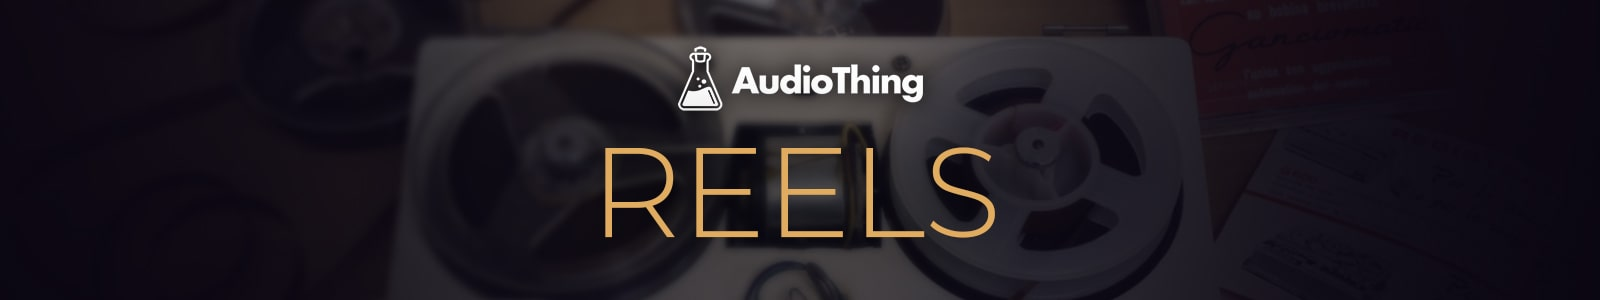 reels by audiothing